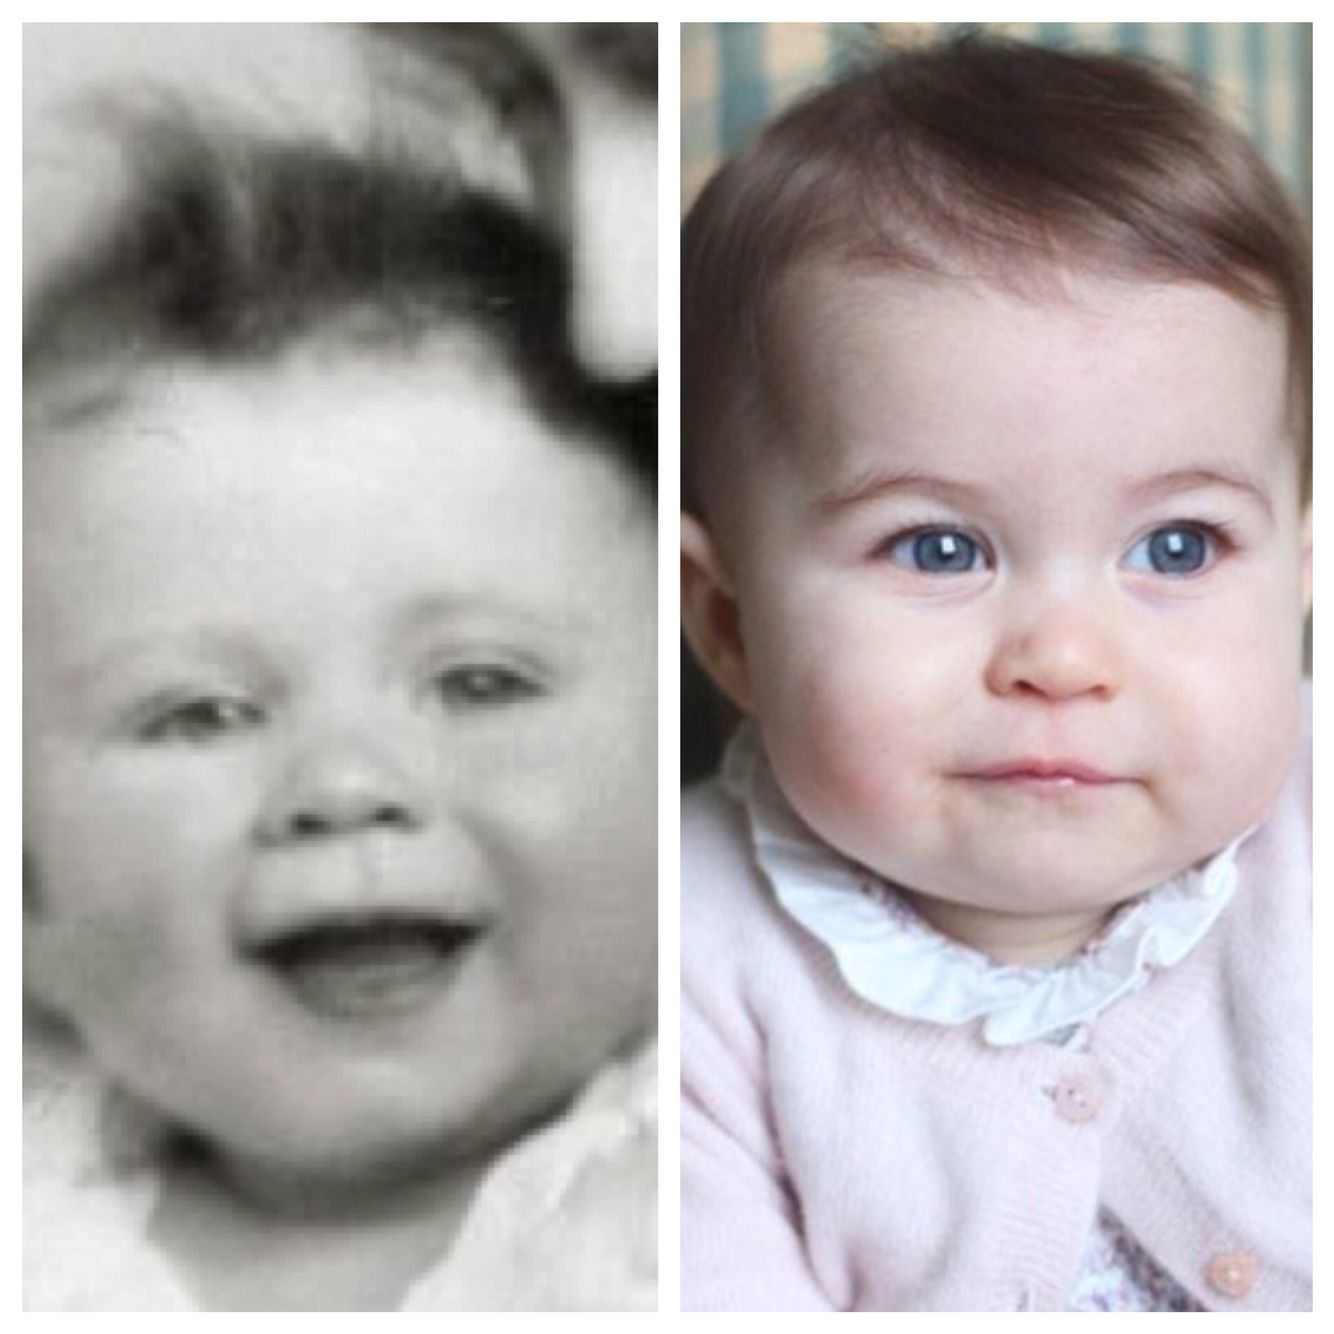 Queen Elizabeth And Princess Charlotte Some People Think She Looks Like Her Great Grandmother